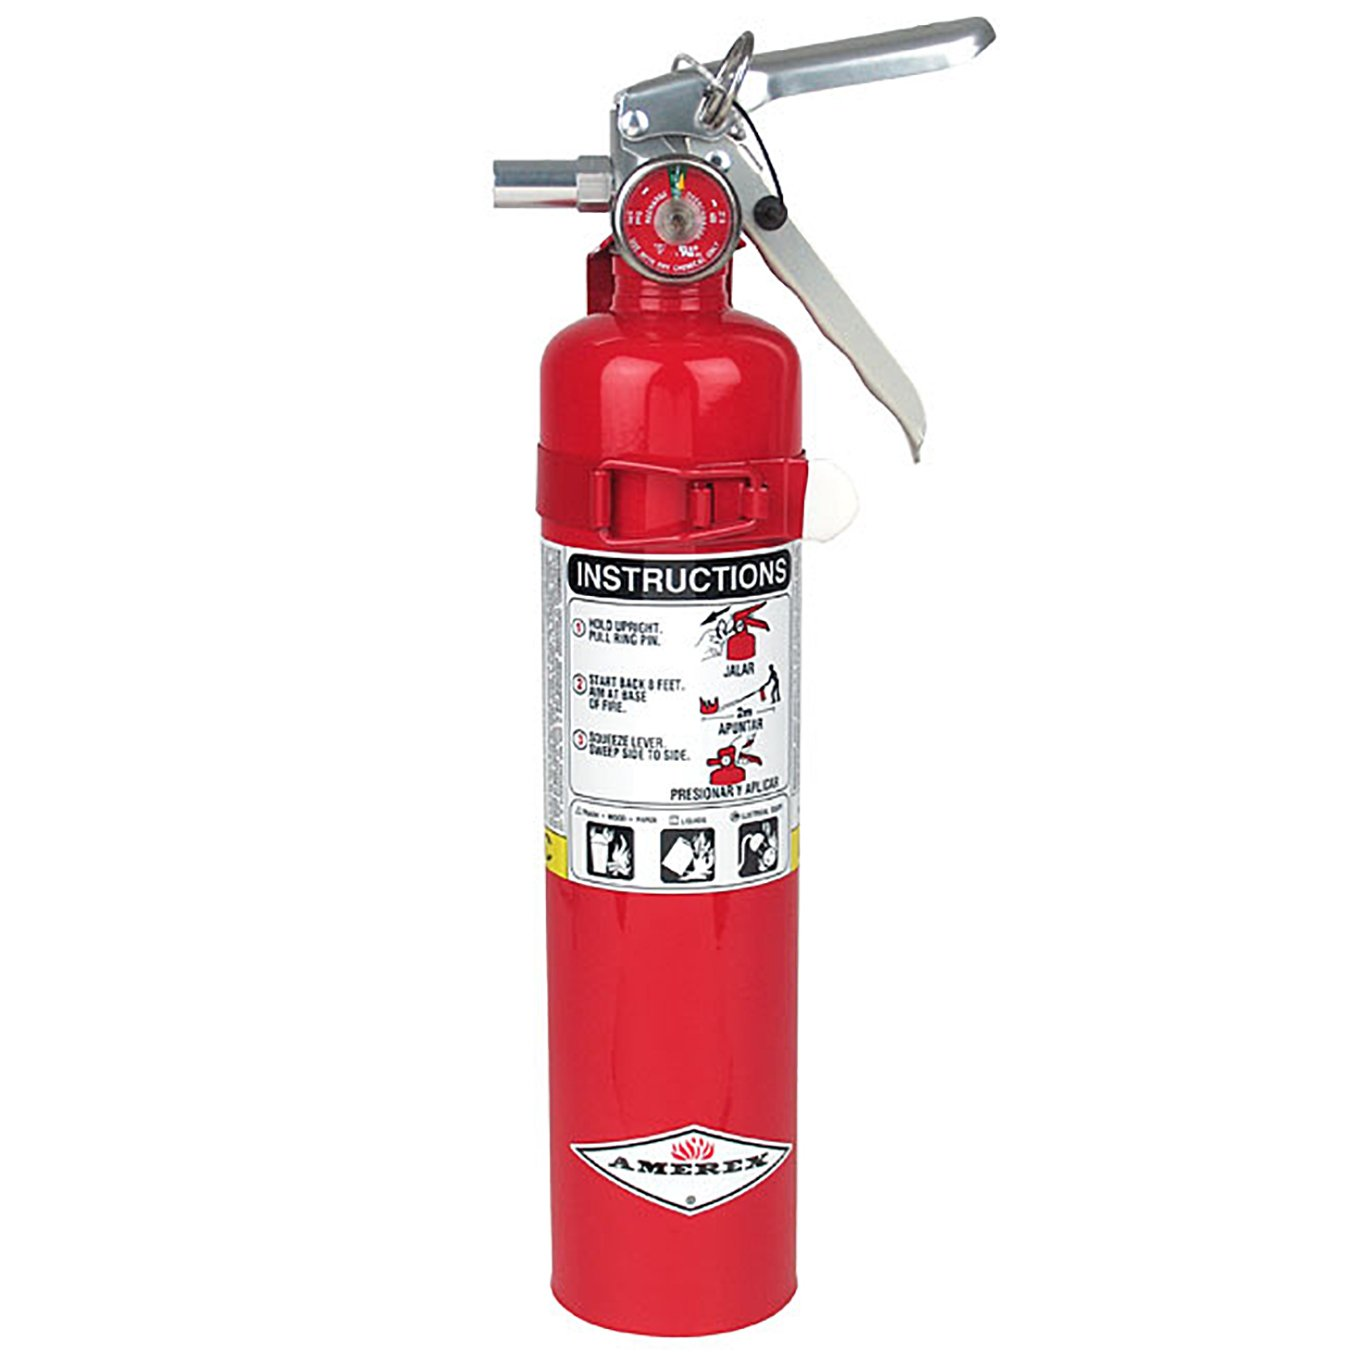 Amerex B417, 2.5 LB Dry Chemical Fire Extinguisher, Class ABC Fires Having Wall Brackets